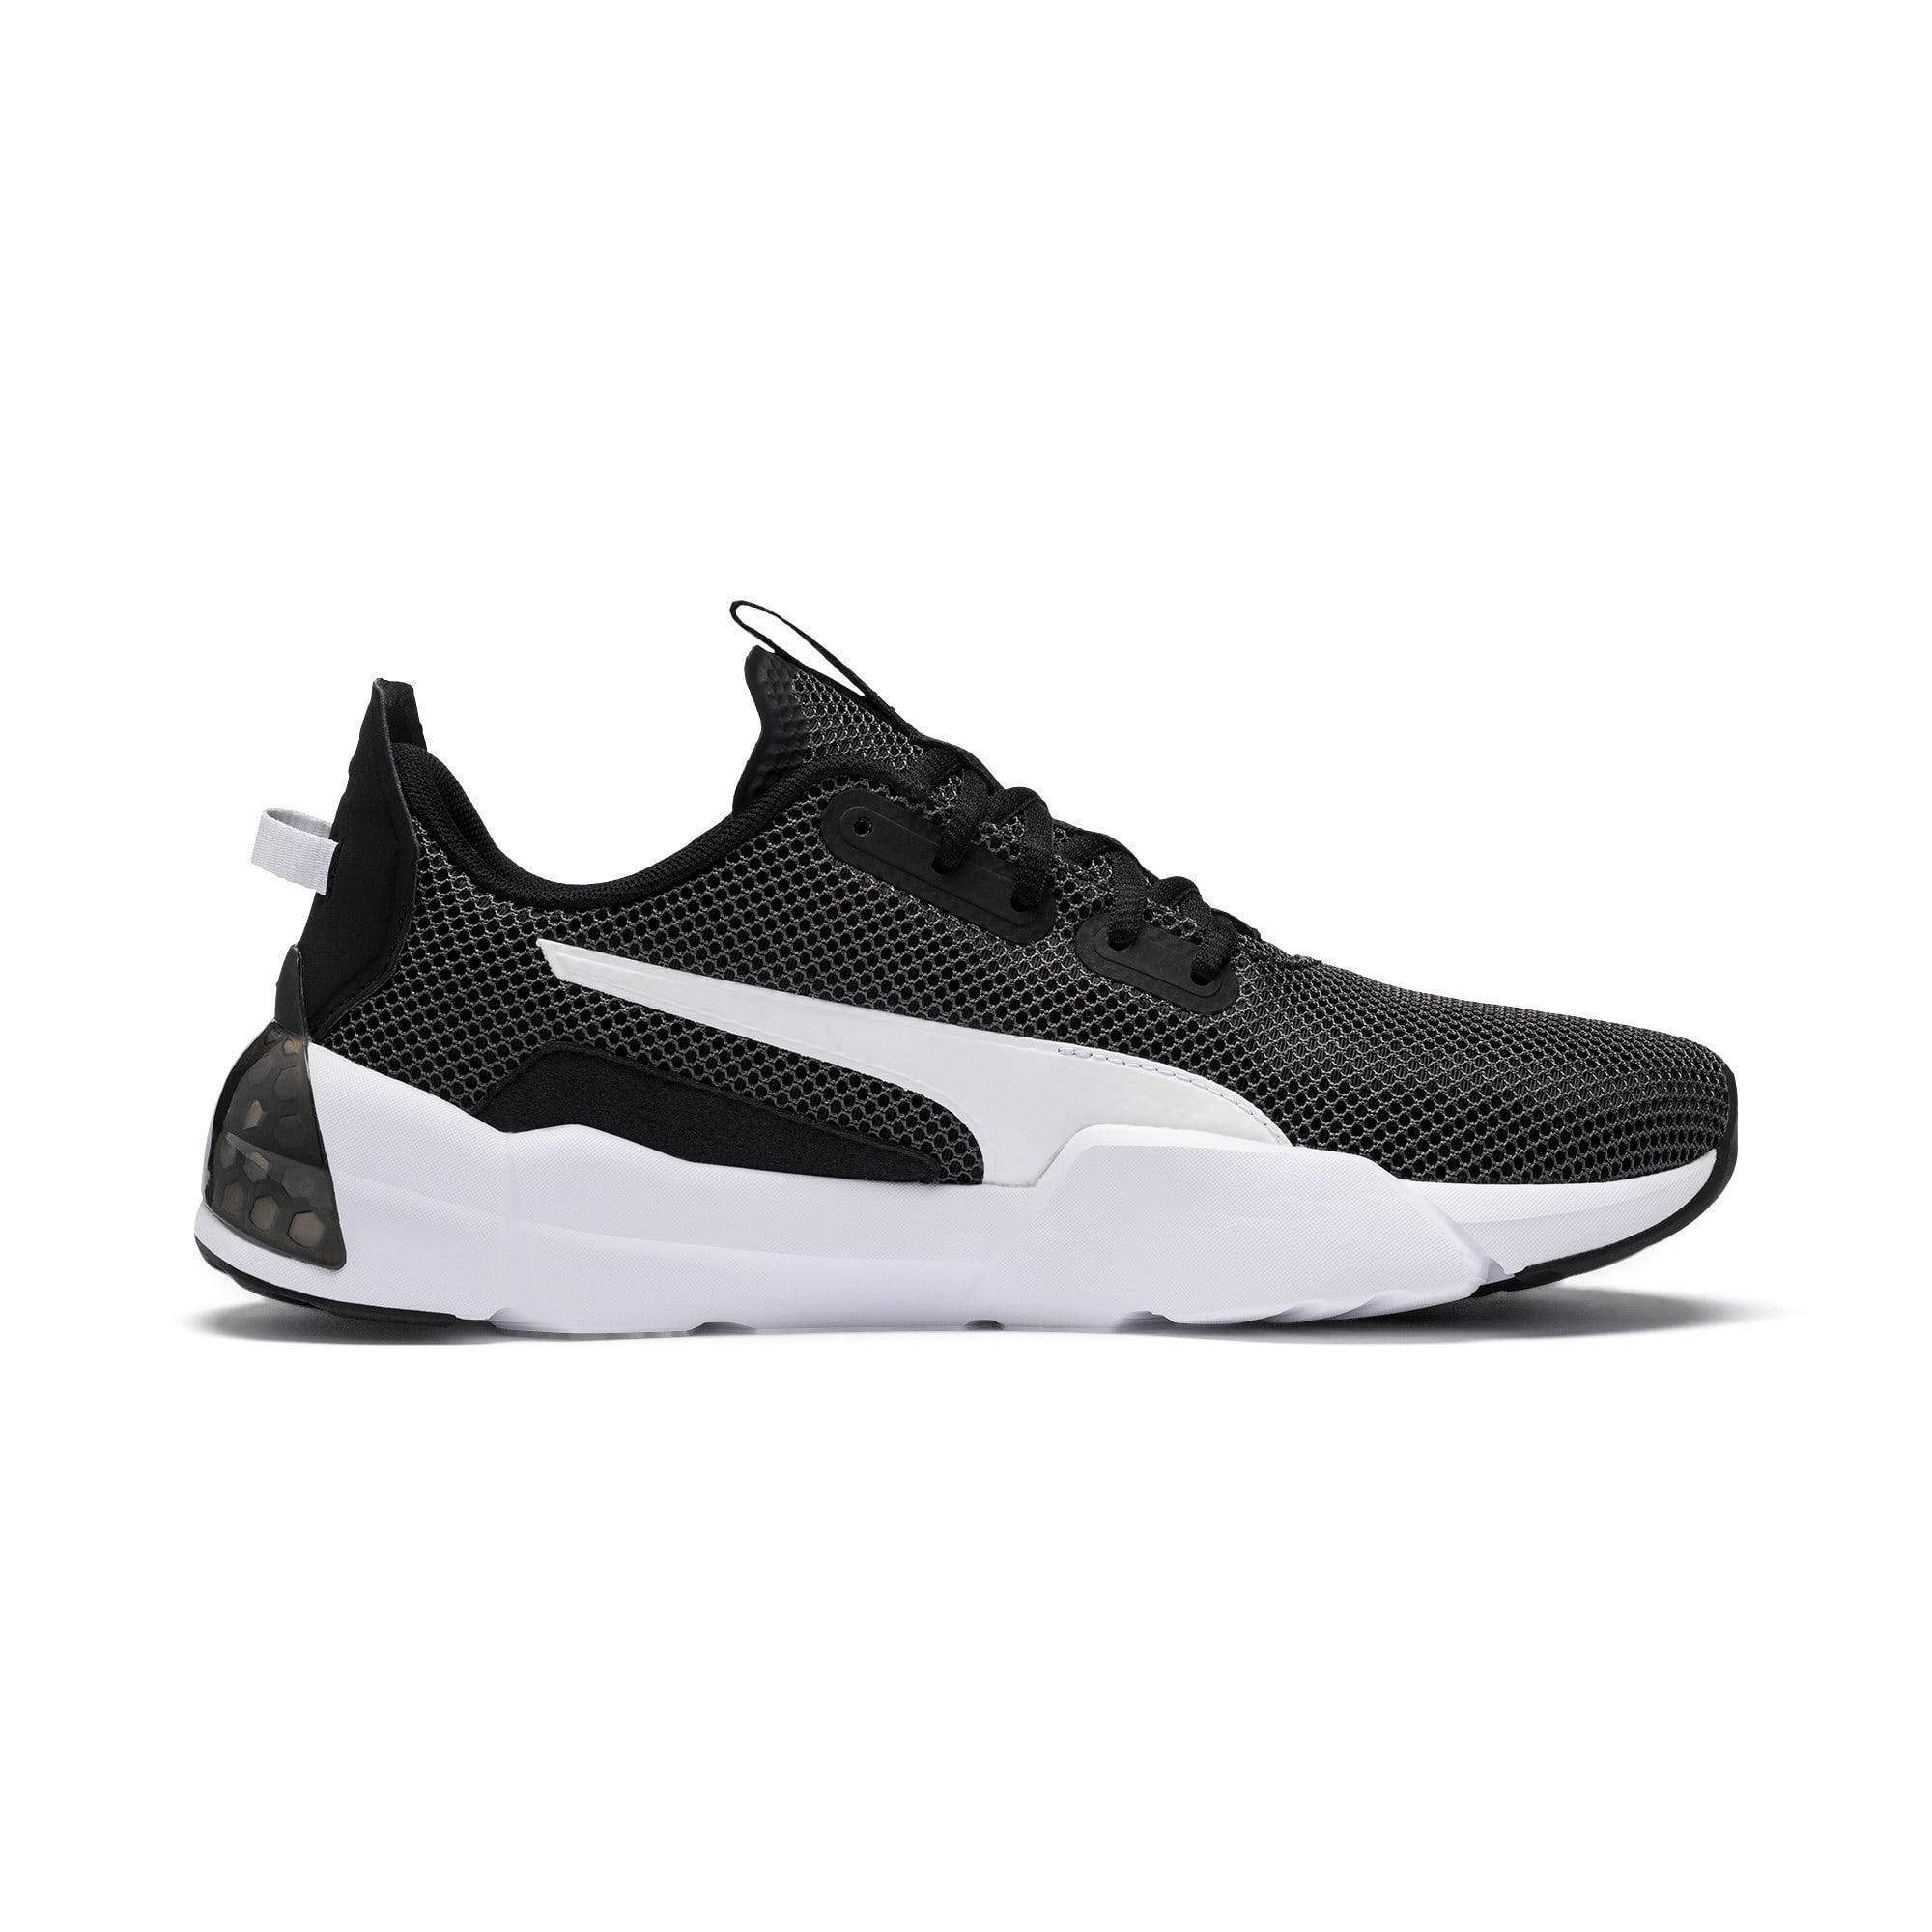 Thumbnail 6 of CELL Phase Herren Running Sneaker, Puma Black-Puma White, medium